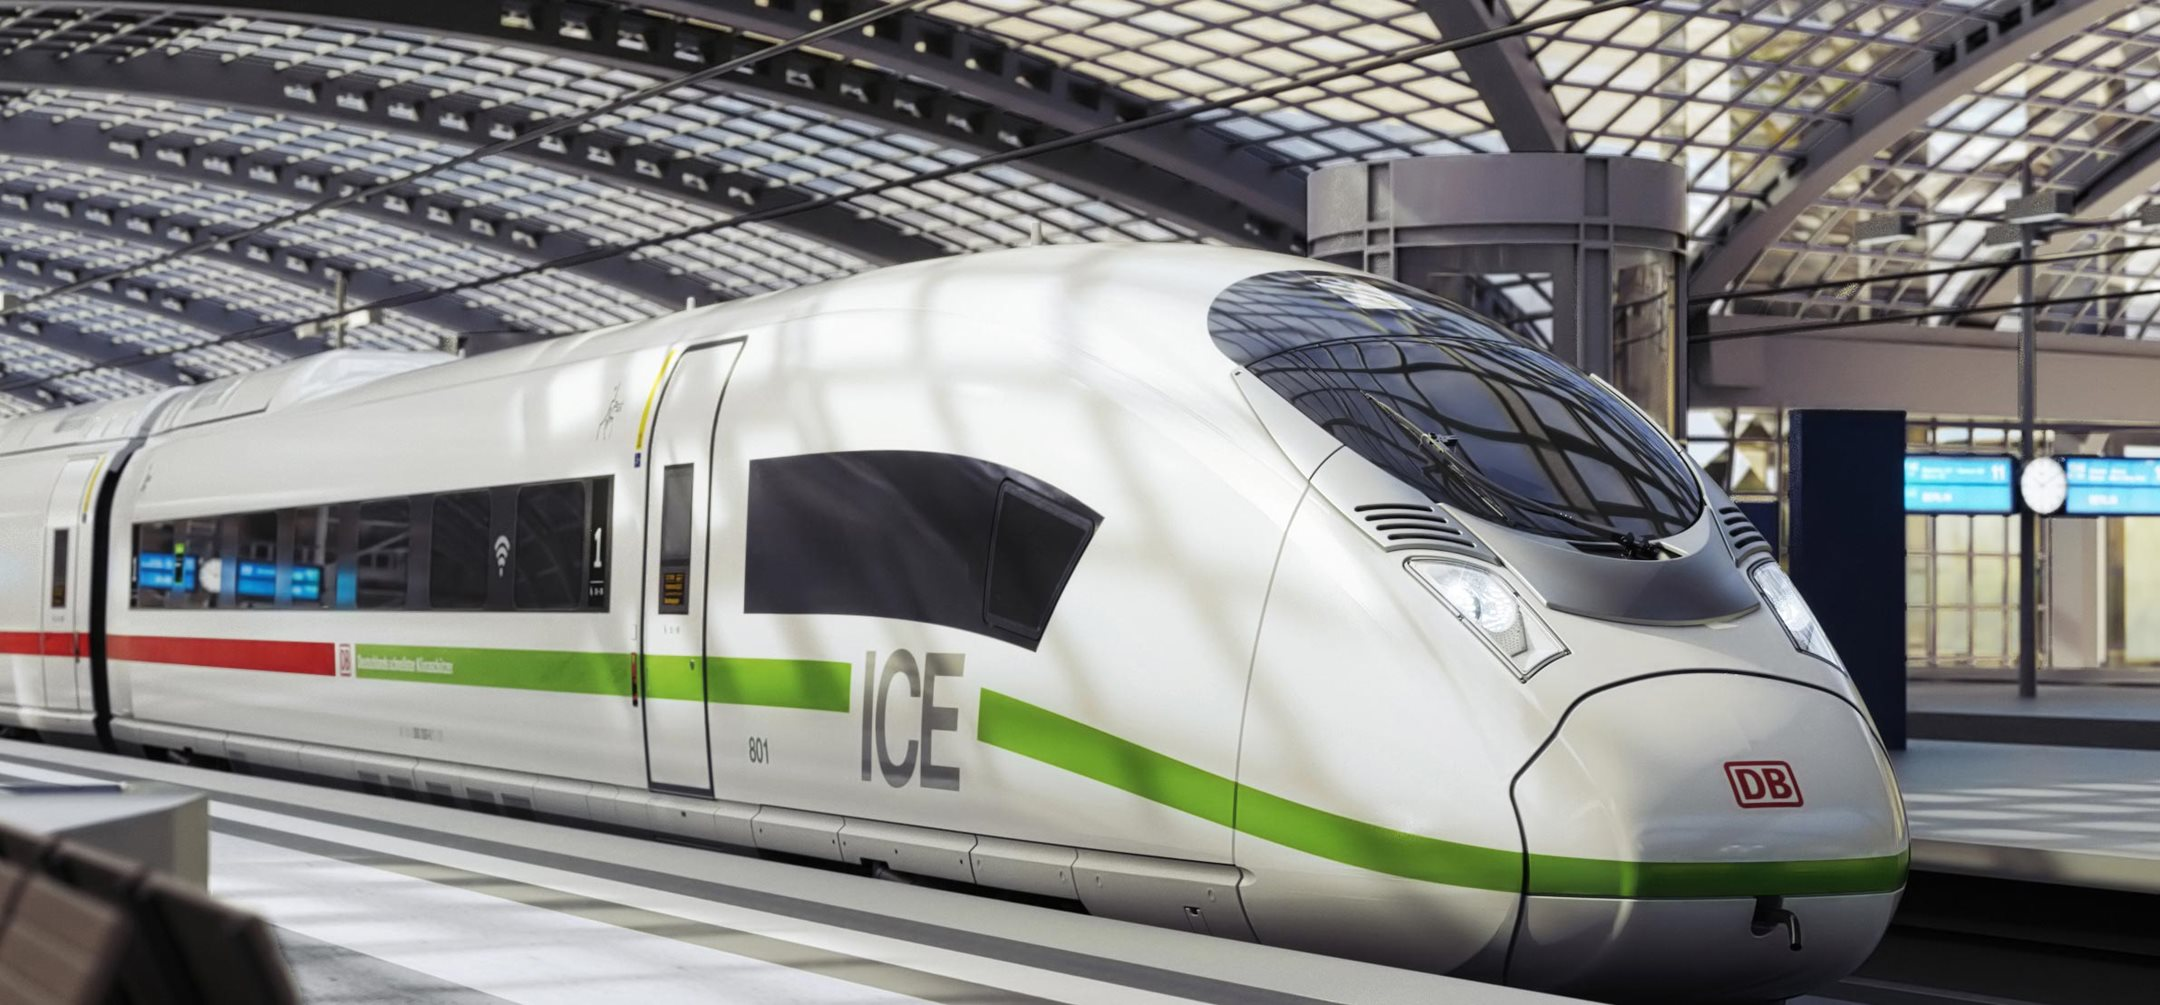 Ricardo supports Siemens Mobility on new ICE trains for Deutsche Bahn